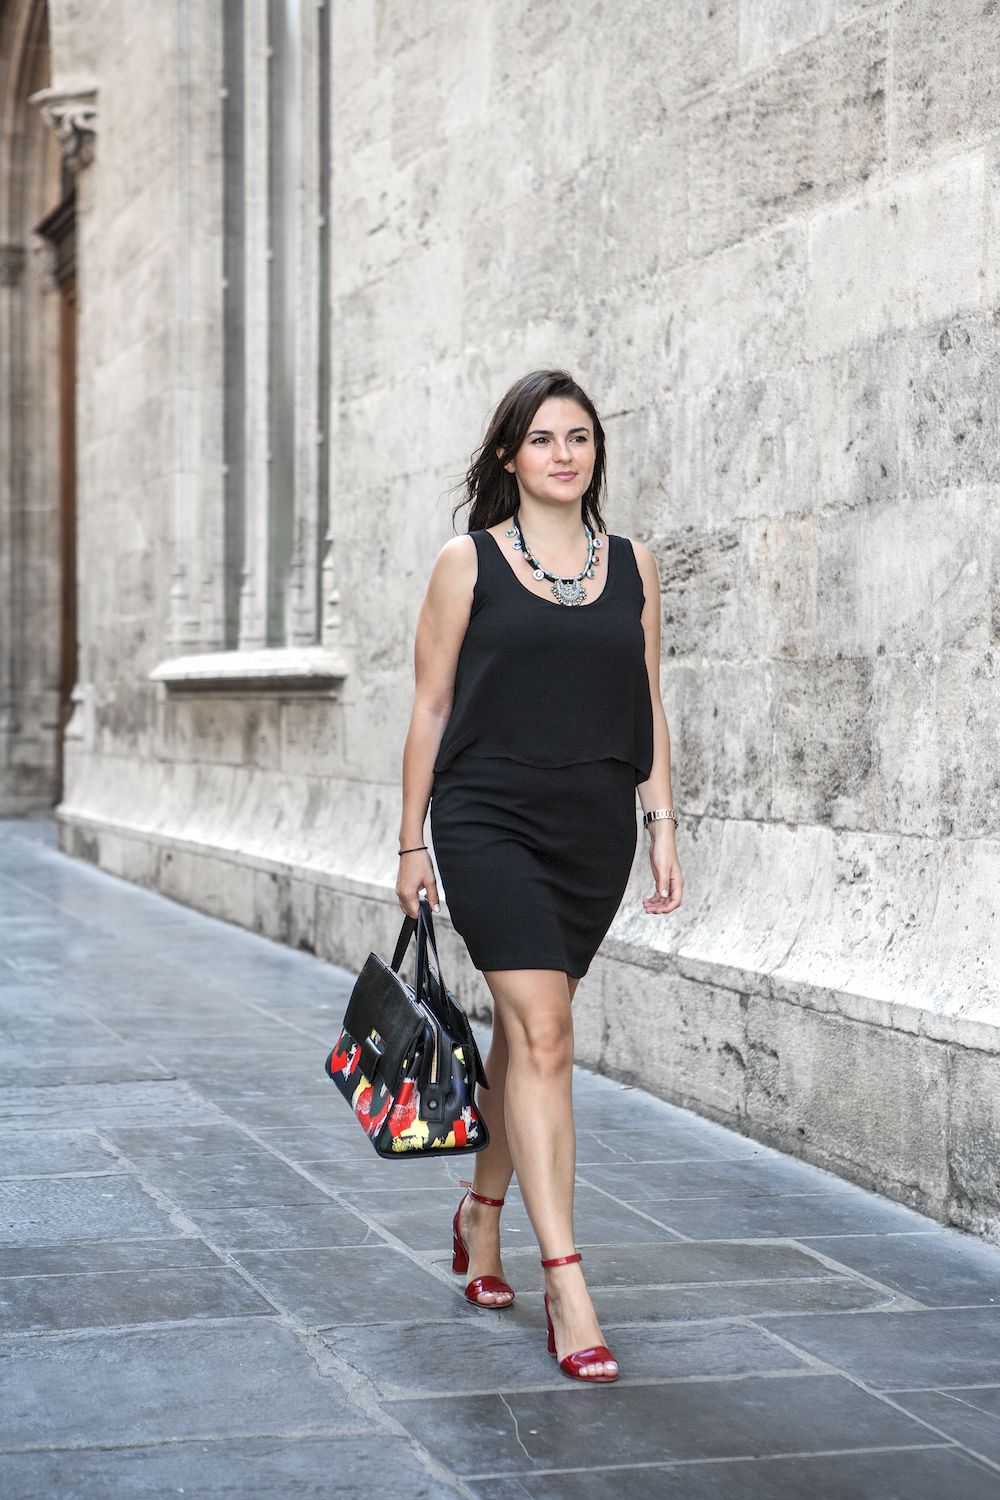 black dress and red shoes for office wear